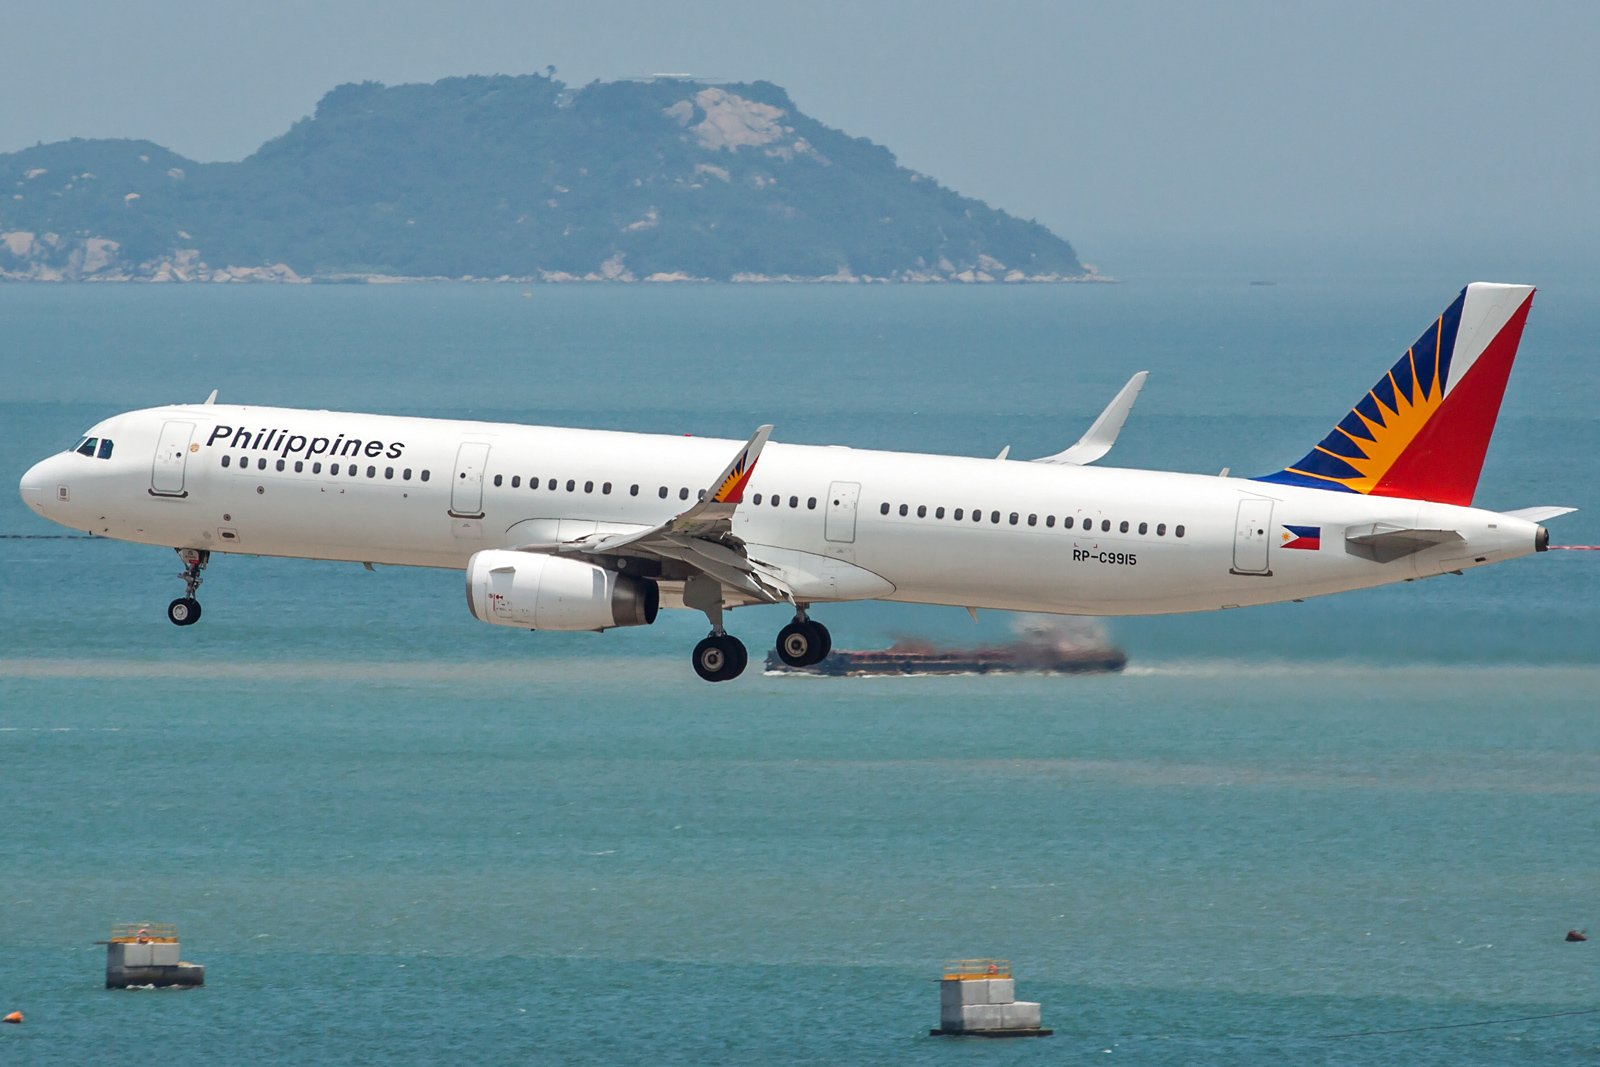 Philippine Airlines Airbus A321-231(WL) RP-C9915